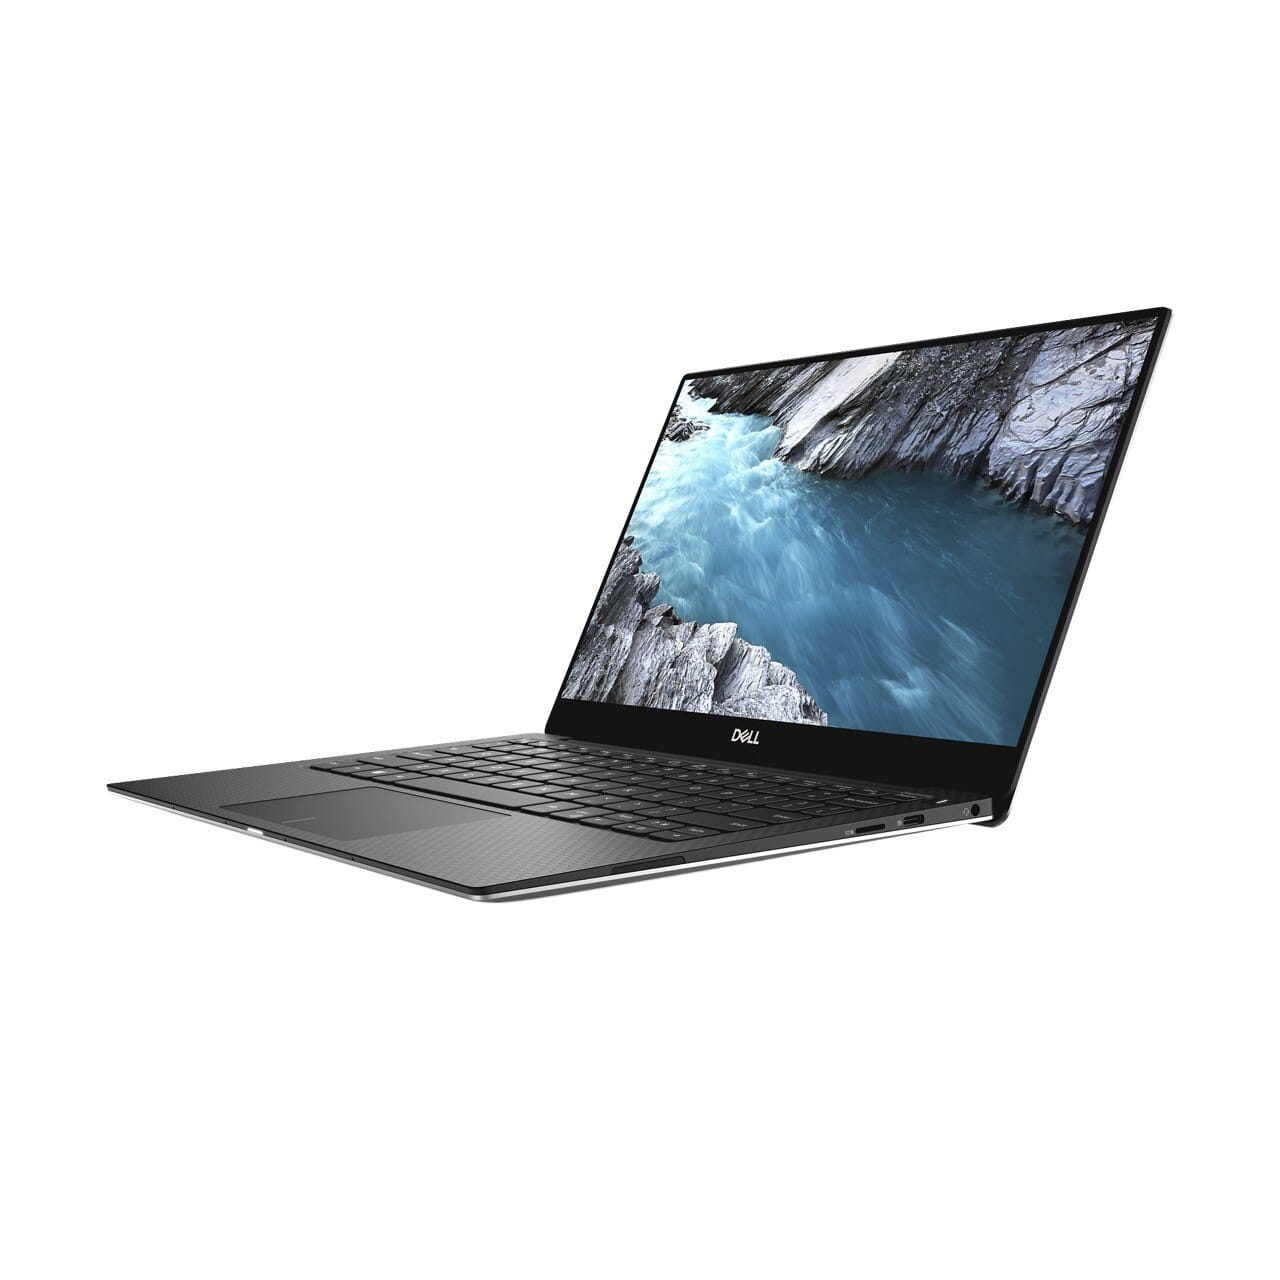 Dell XPS 13 9370 Laptop: 4K Touch, I7-8550U, 16GB DDR3